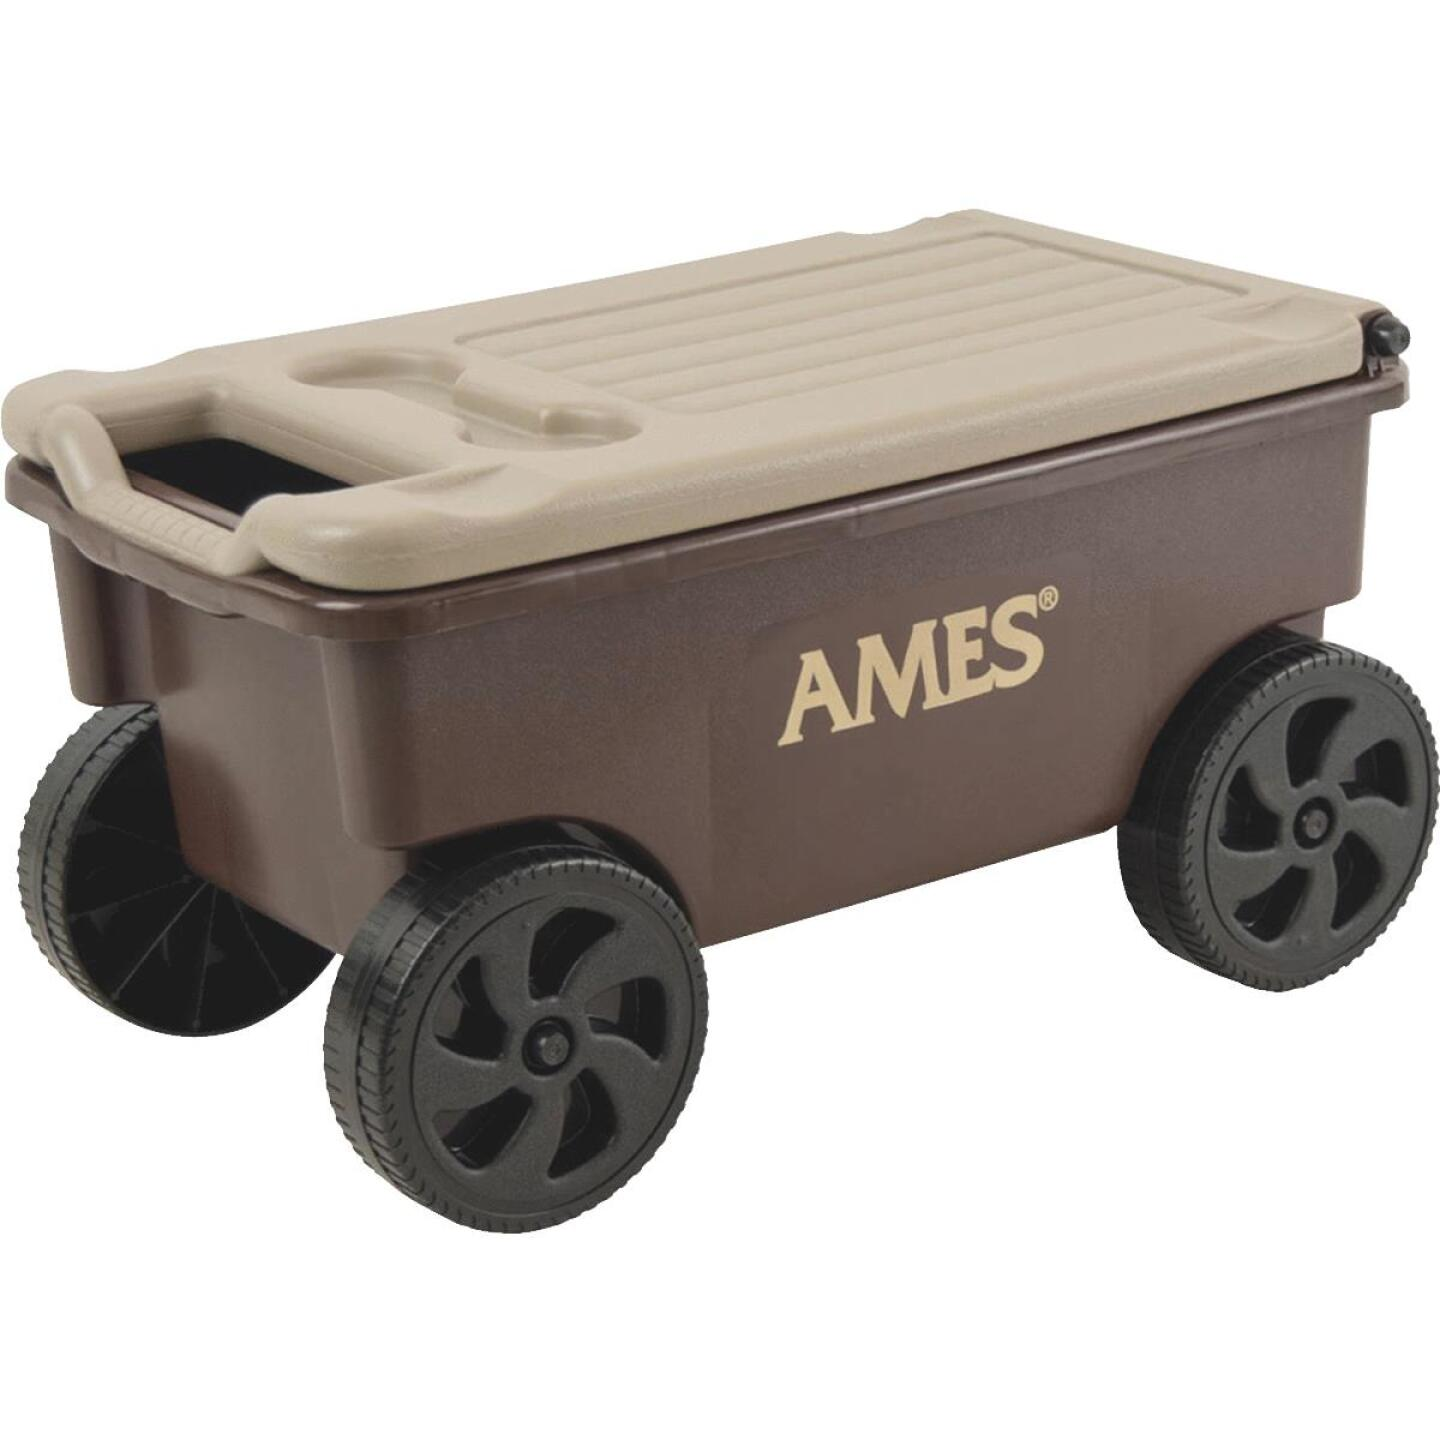 Ames Lawn Buddy 2 Cu. Ft. 200 Lb. Poly Garden Cart Image 1